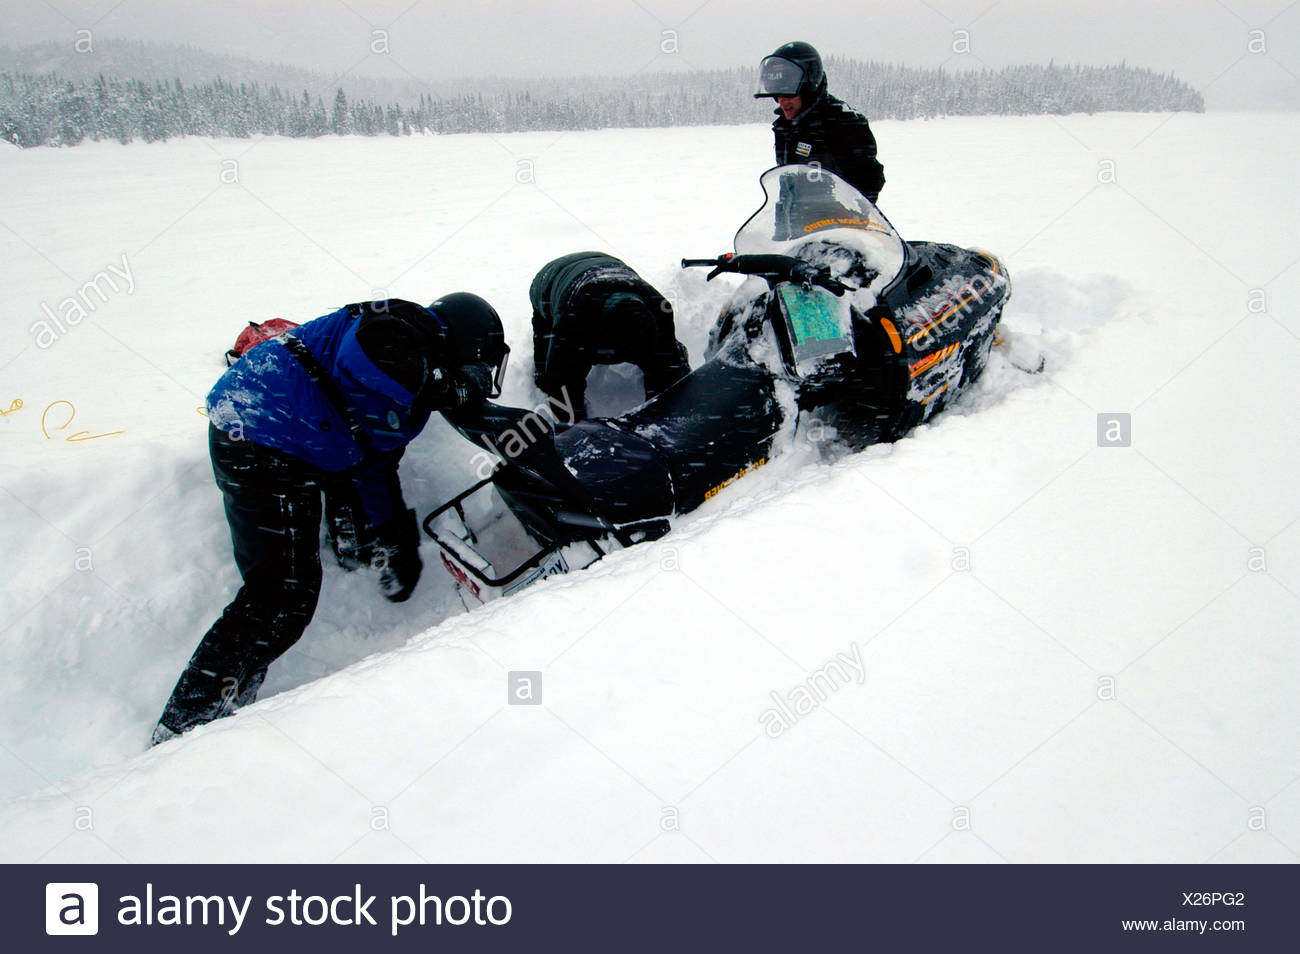 Snowmobile stuck in deep snow, Saguenay-Lac Saint Jean, Mont Valin Region, Quebec, Canada, North America - Stock Image